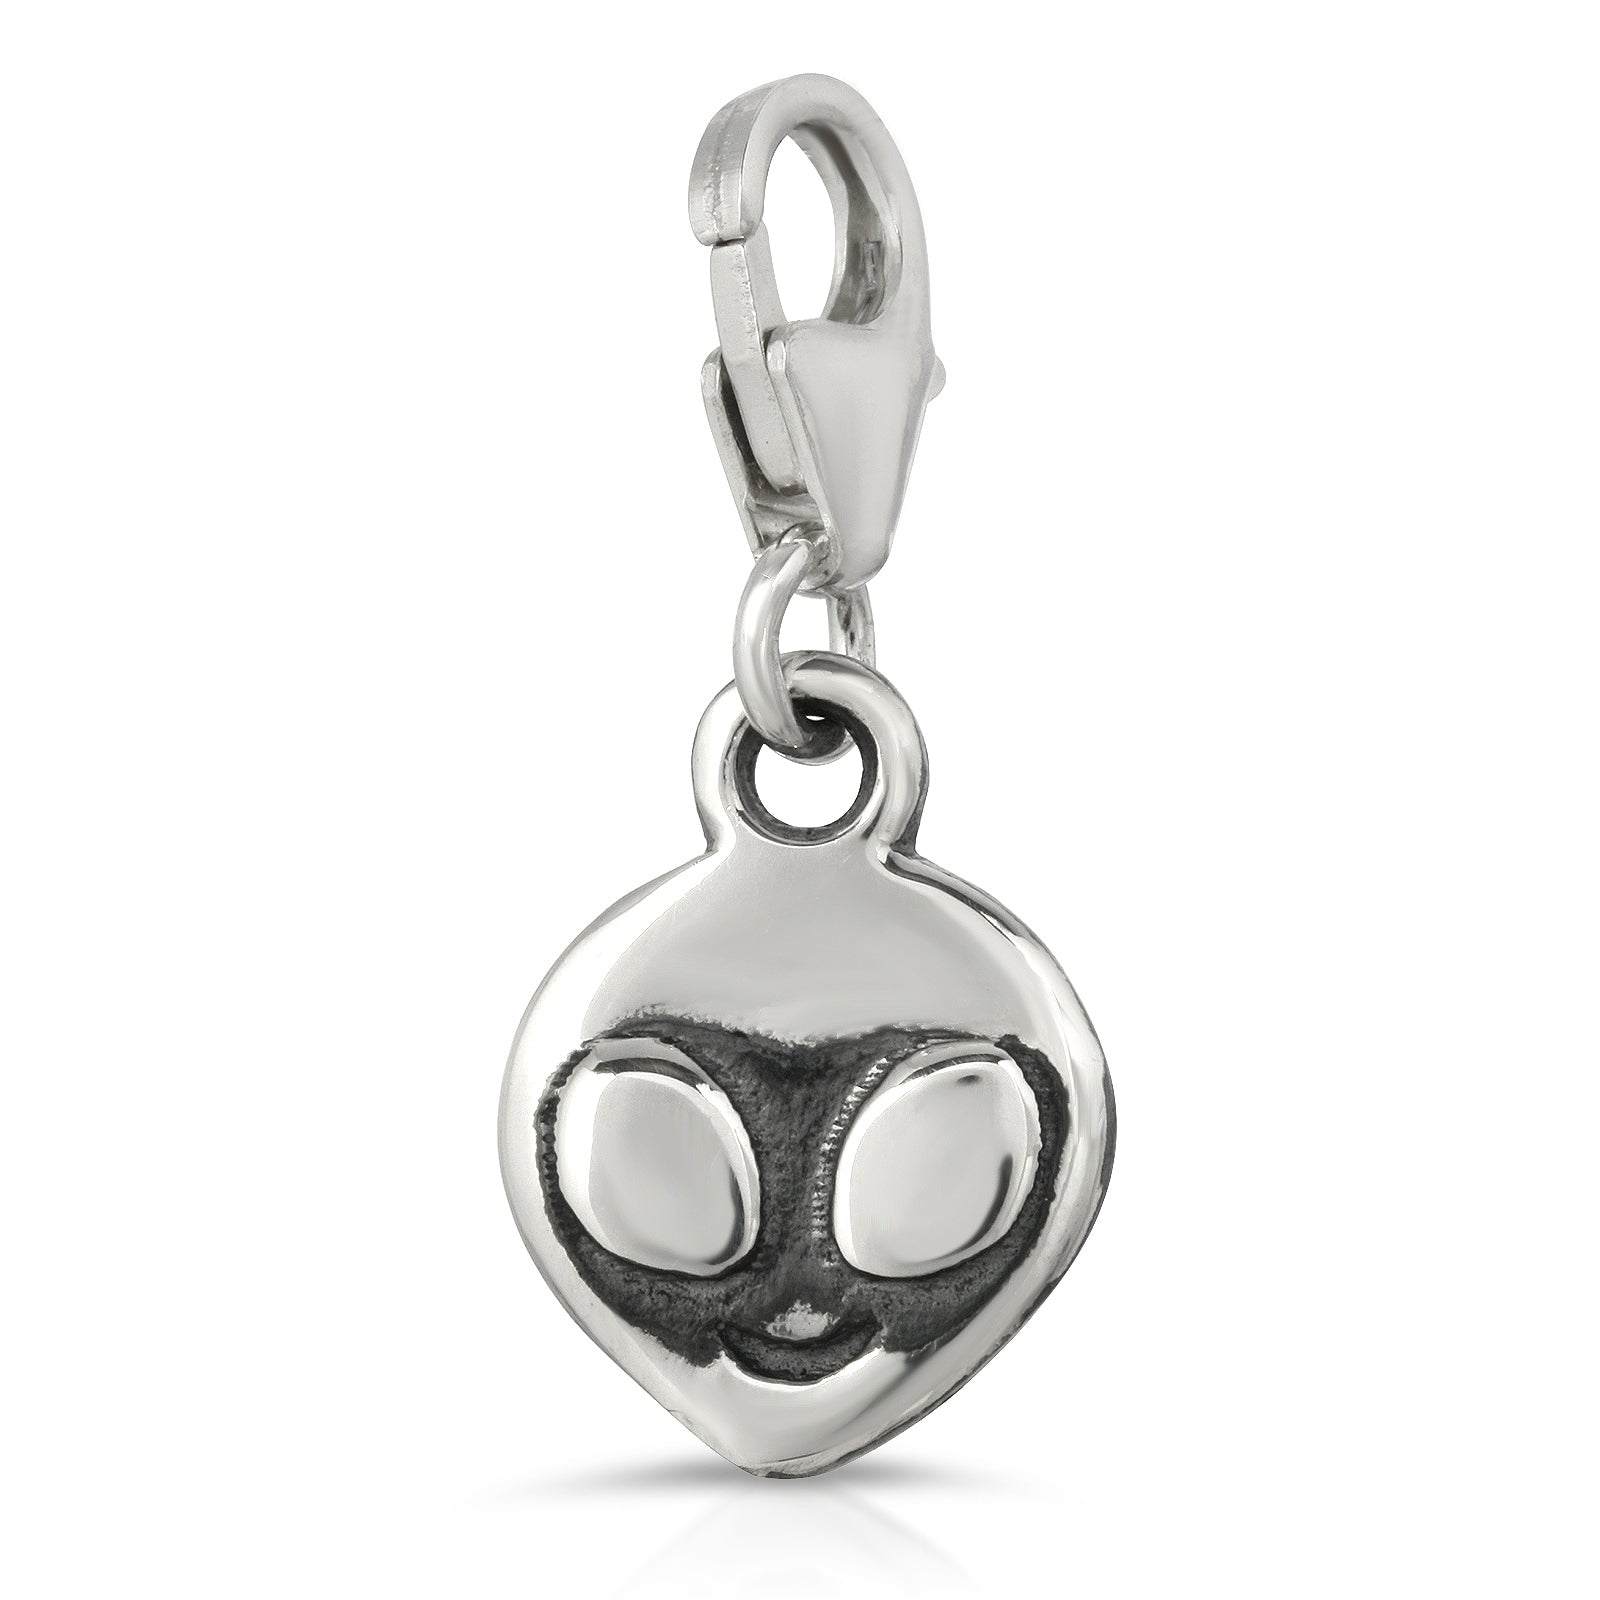 The W Brothers Premium Grade A 925 Sterling Silver Alien Charm Pendant, perfect for a fashionable statement for men and women's jewelry accessory. Available at www.thewbros.com